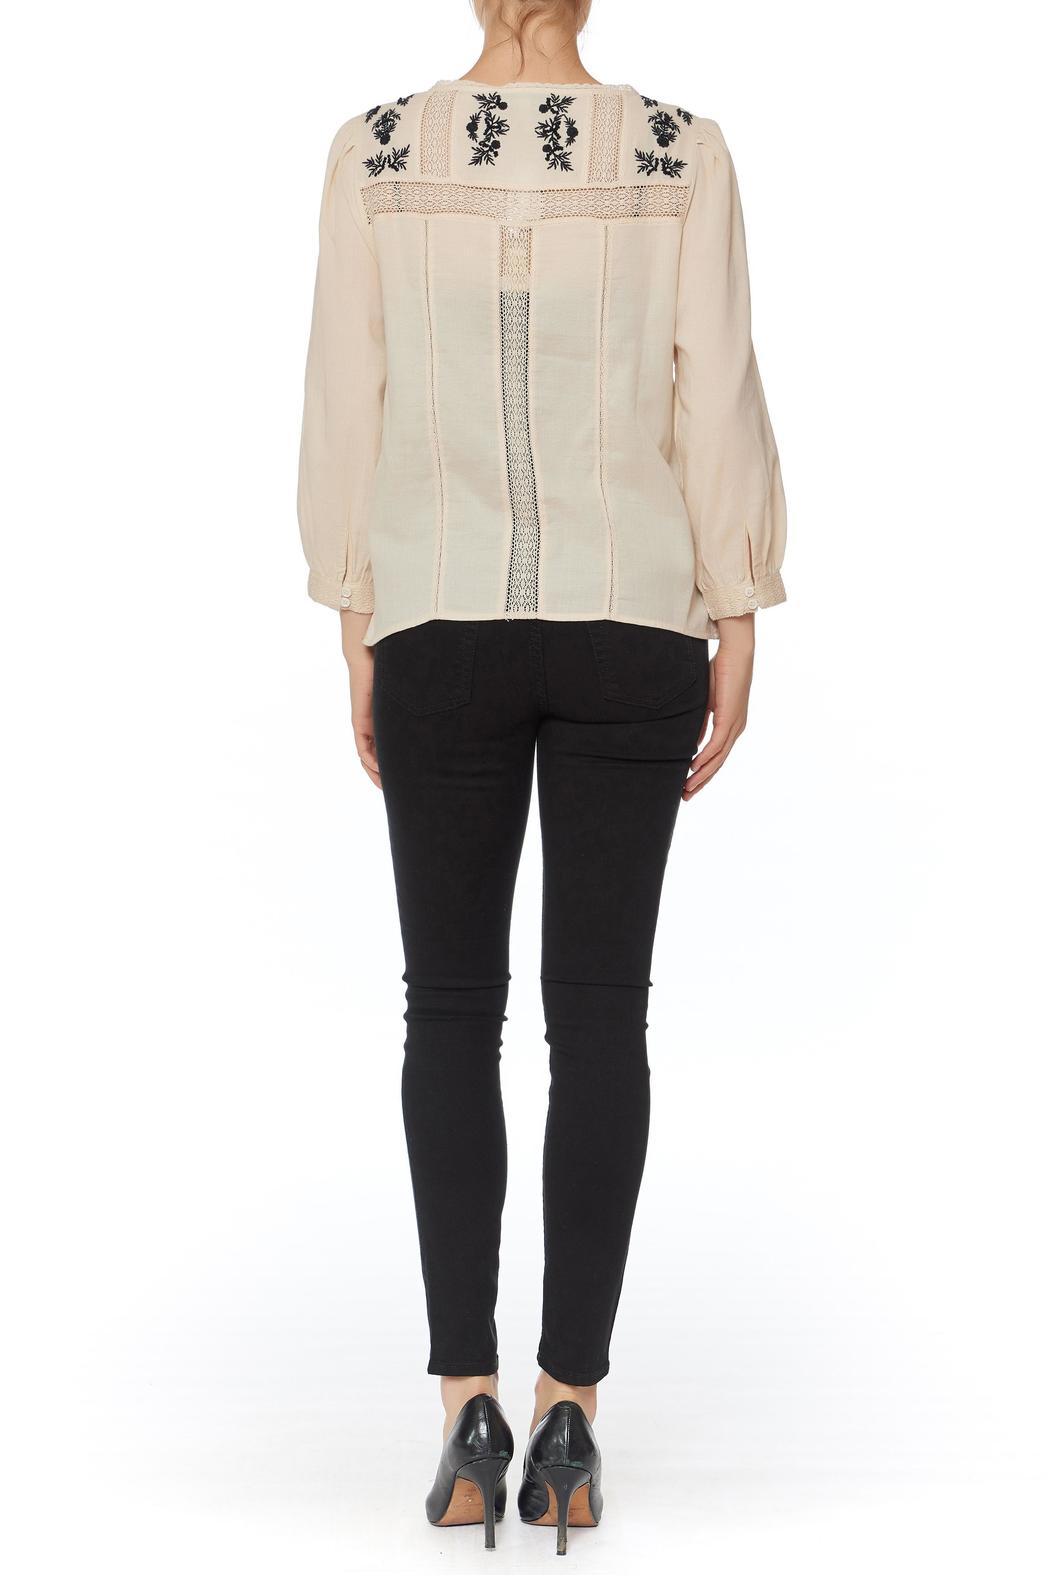 Joie Oakes Blouse - Front Full Image